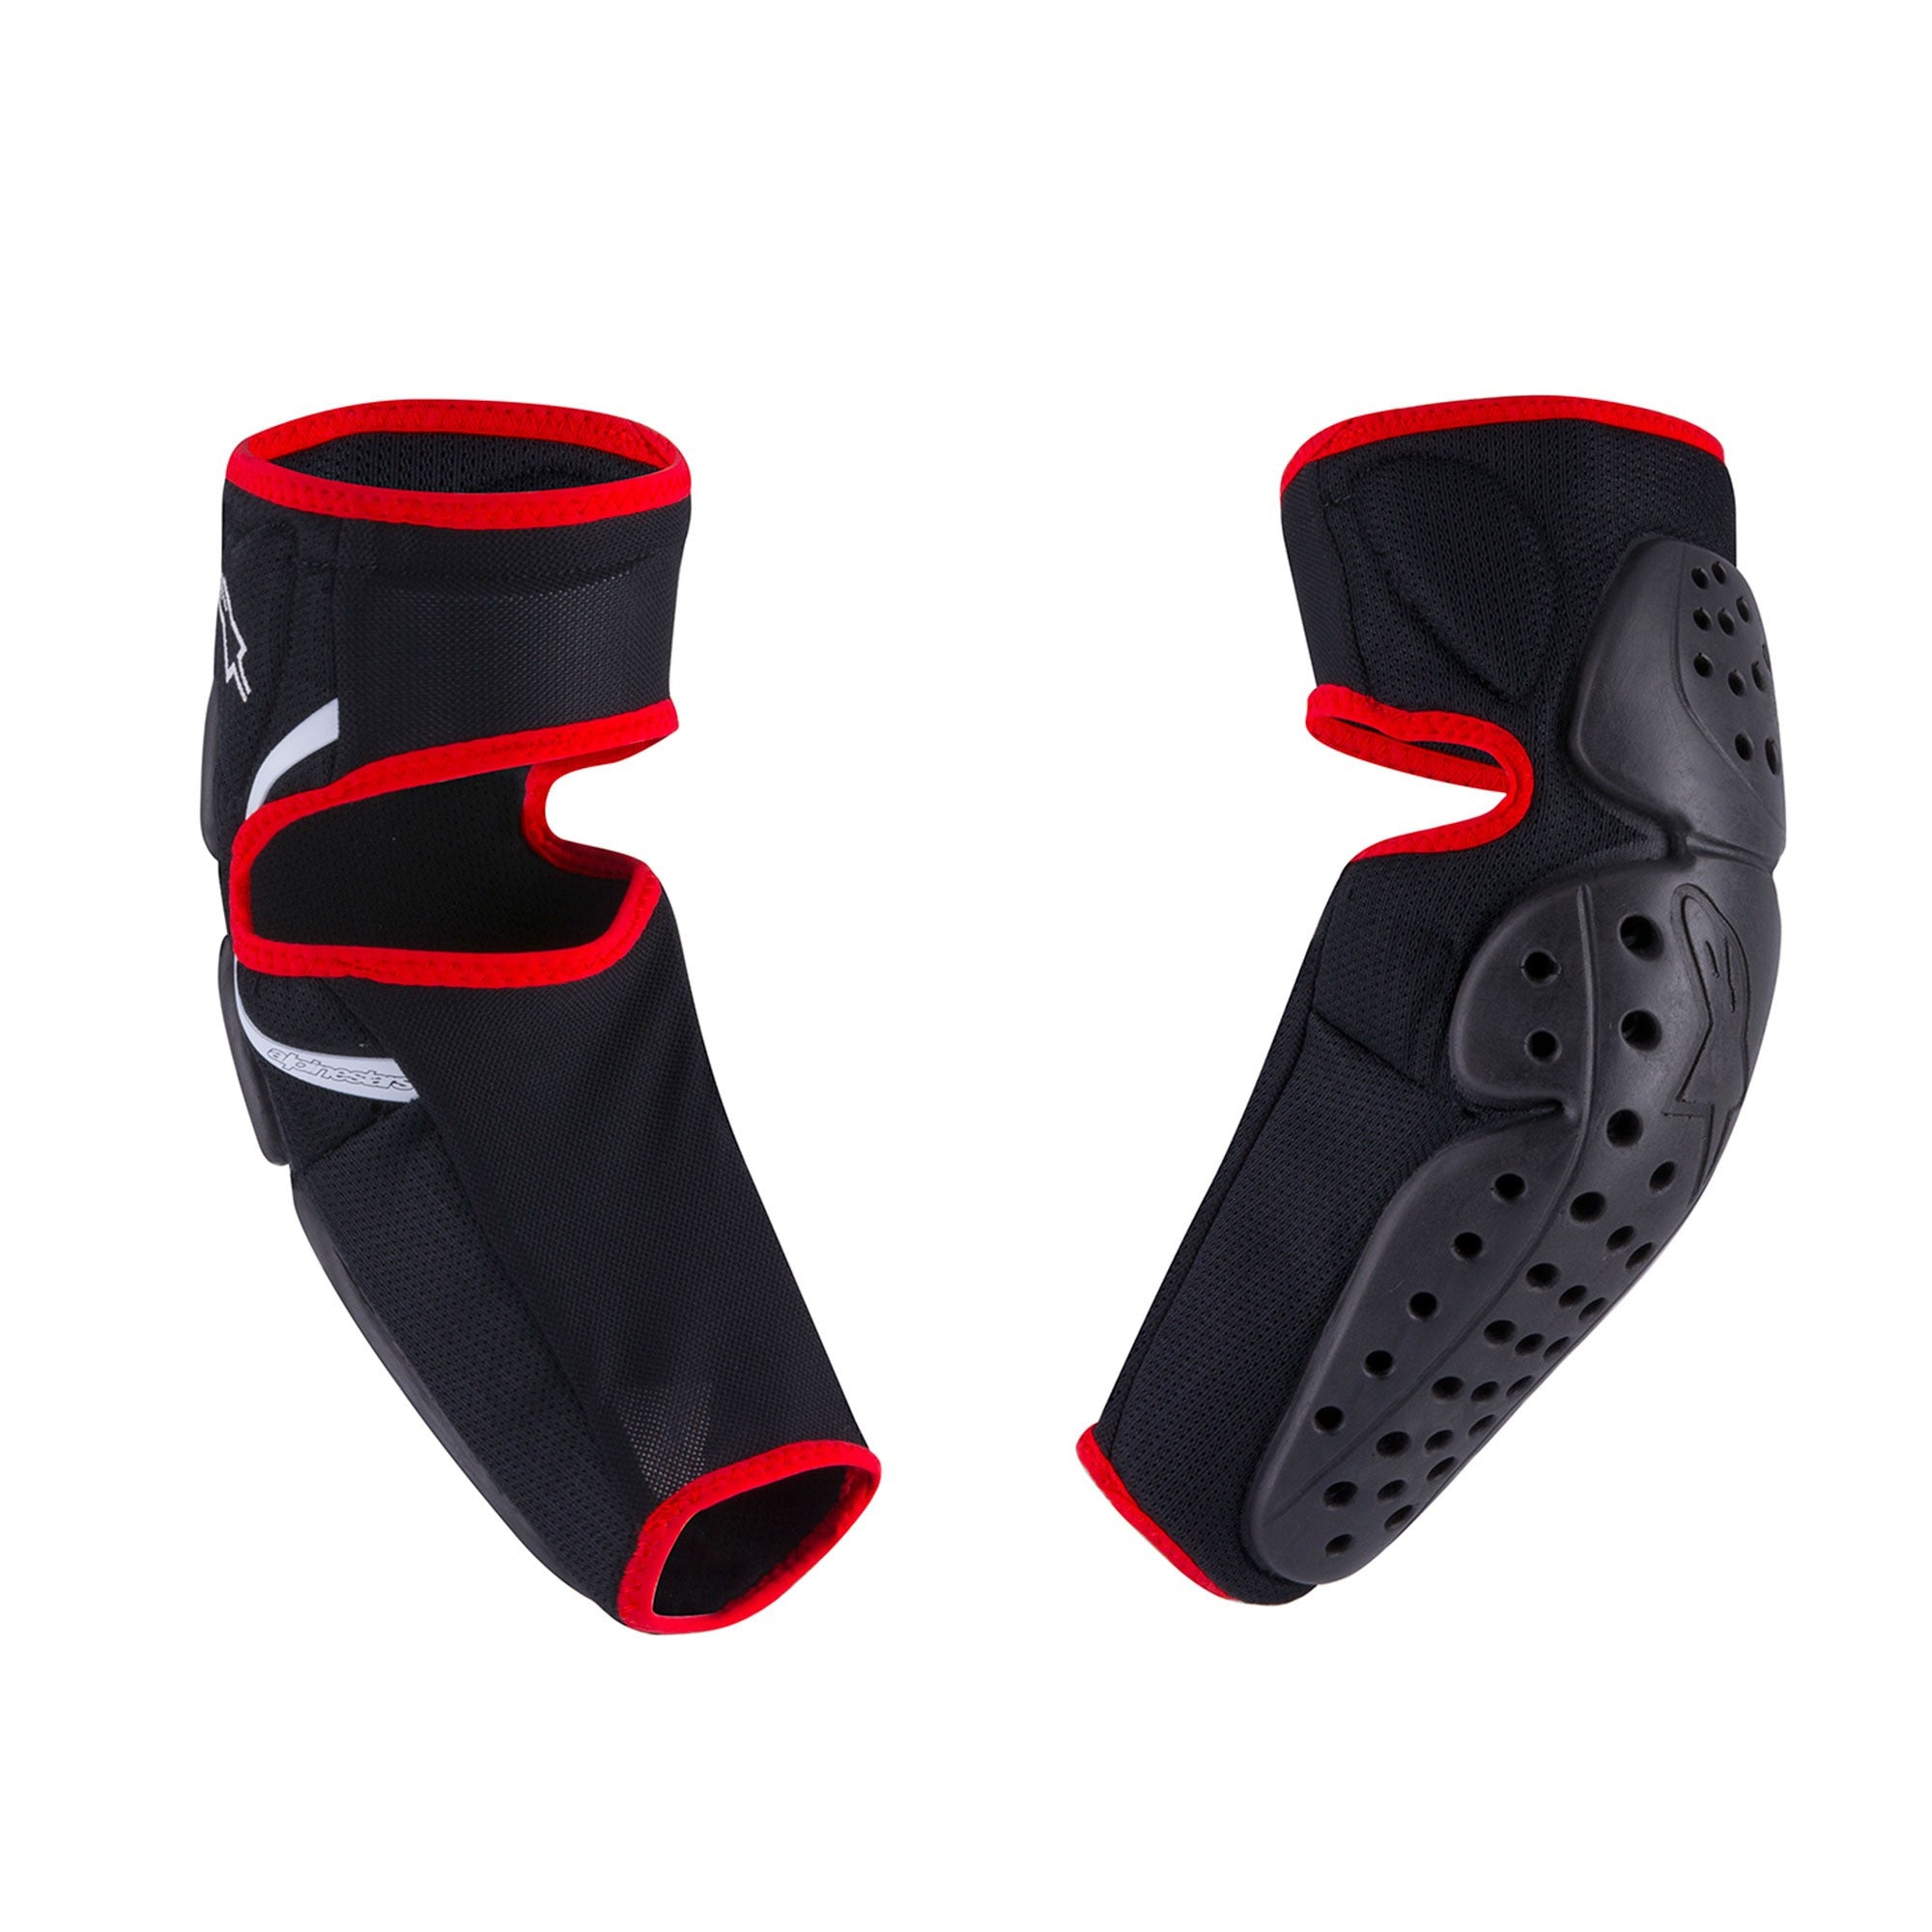 Volcano Elbow Guard by Alpinestars